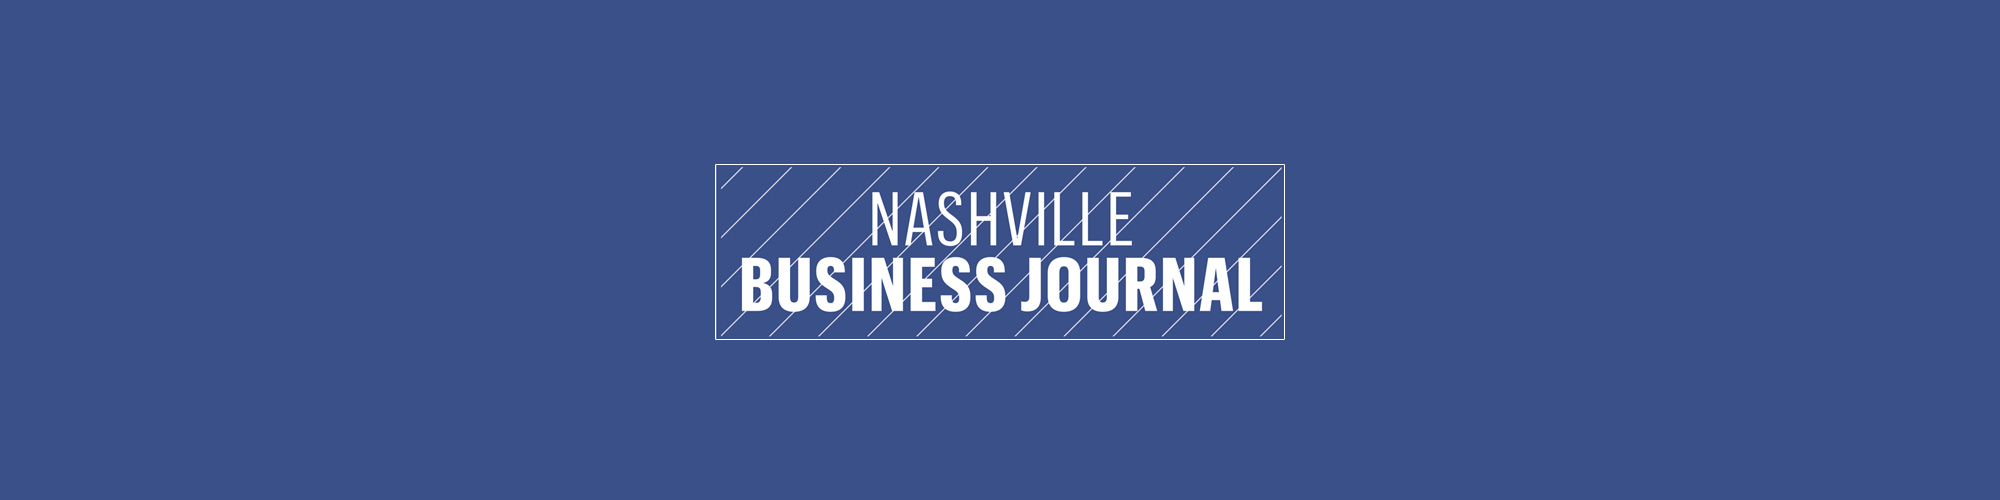 Bailey Southwell & Co. Featured in the Nashville Business Journal